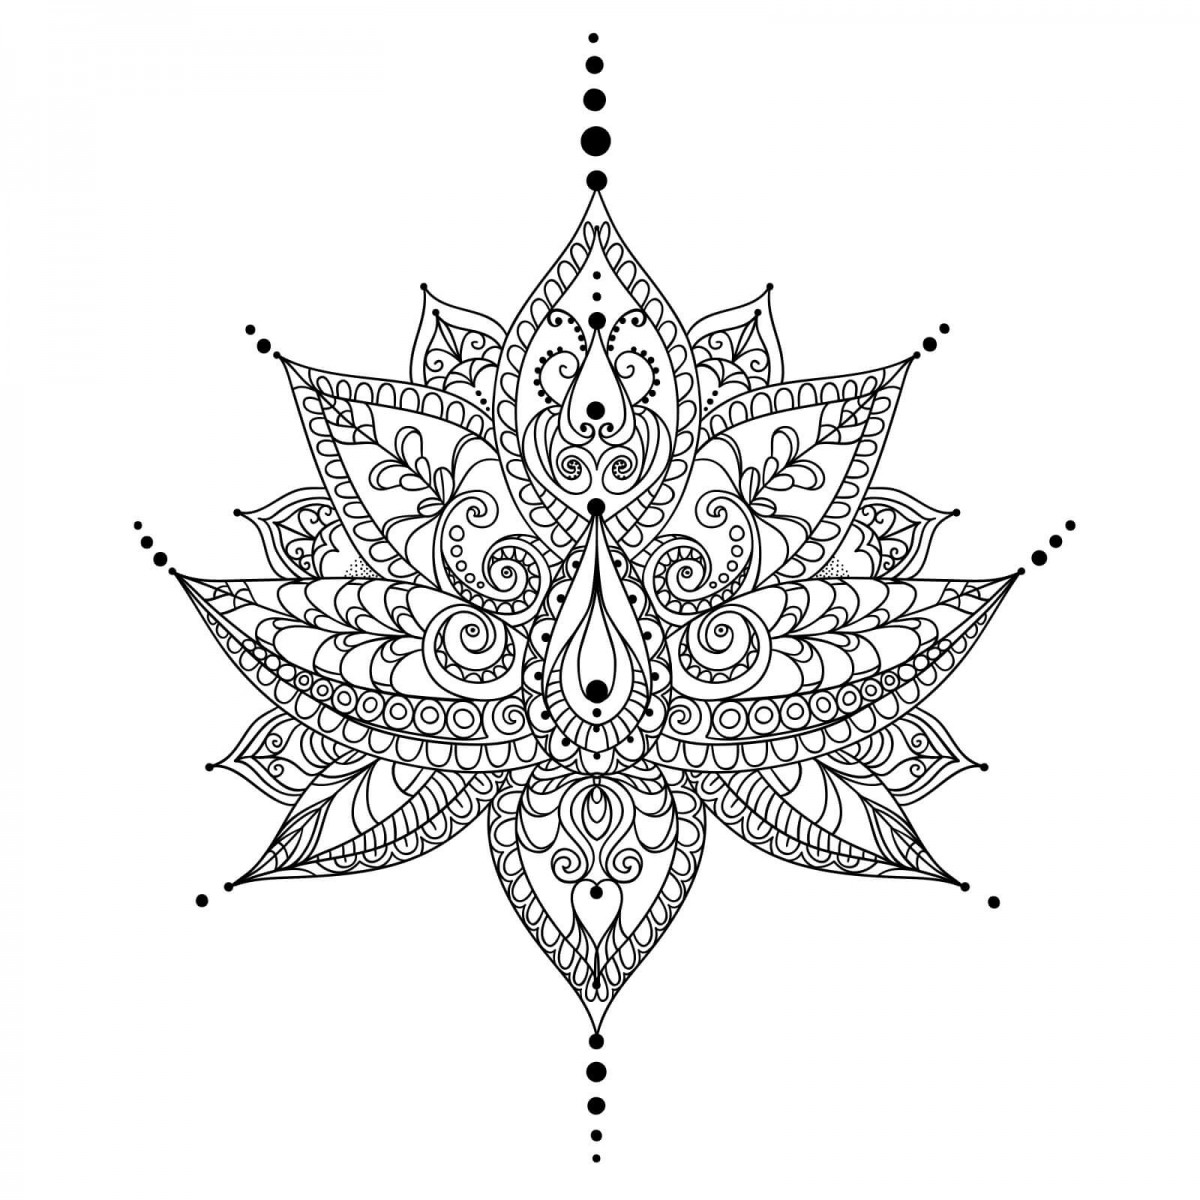 42. Unique Mandala Coloring Page